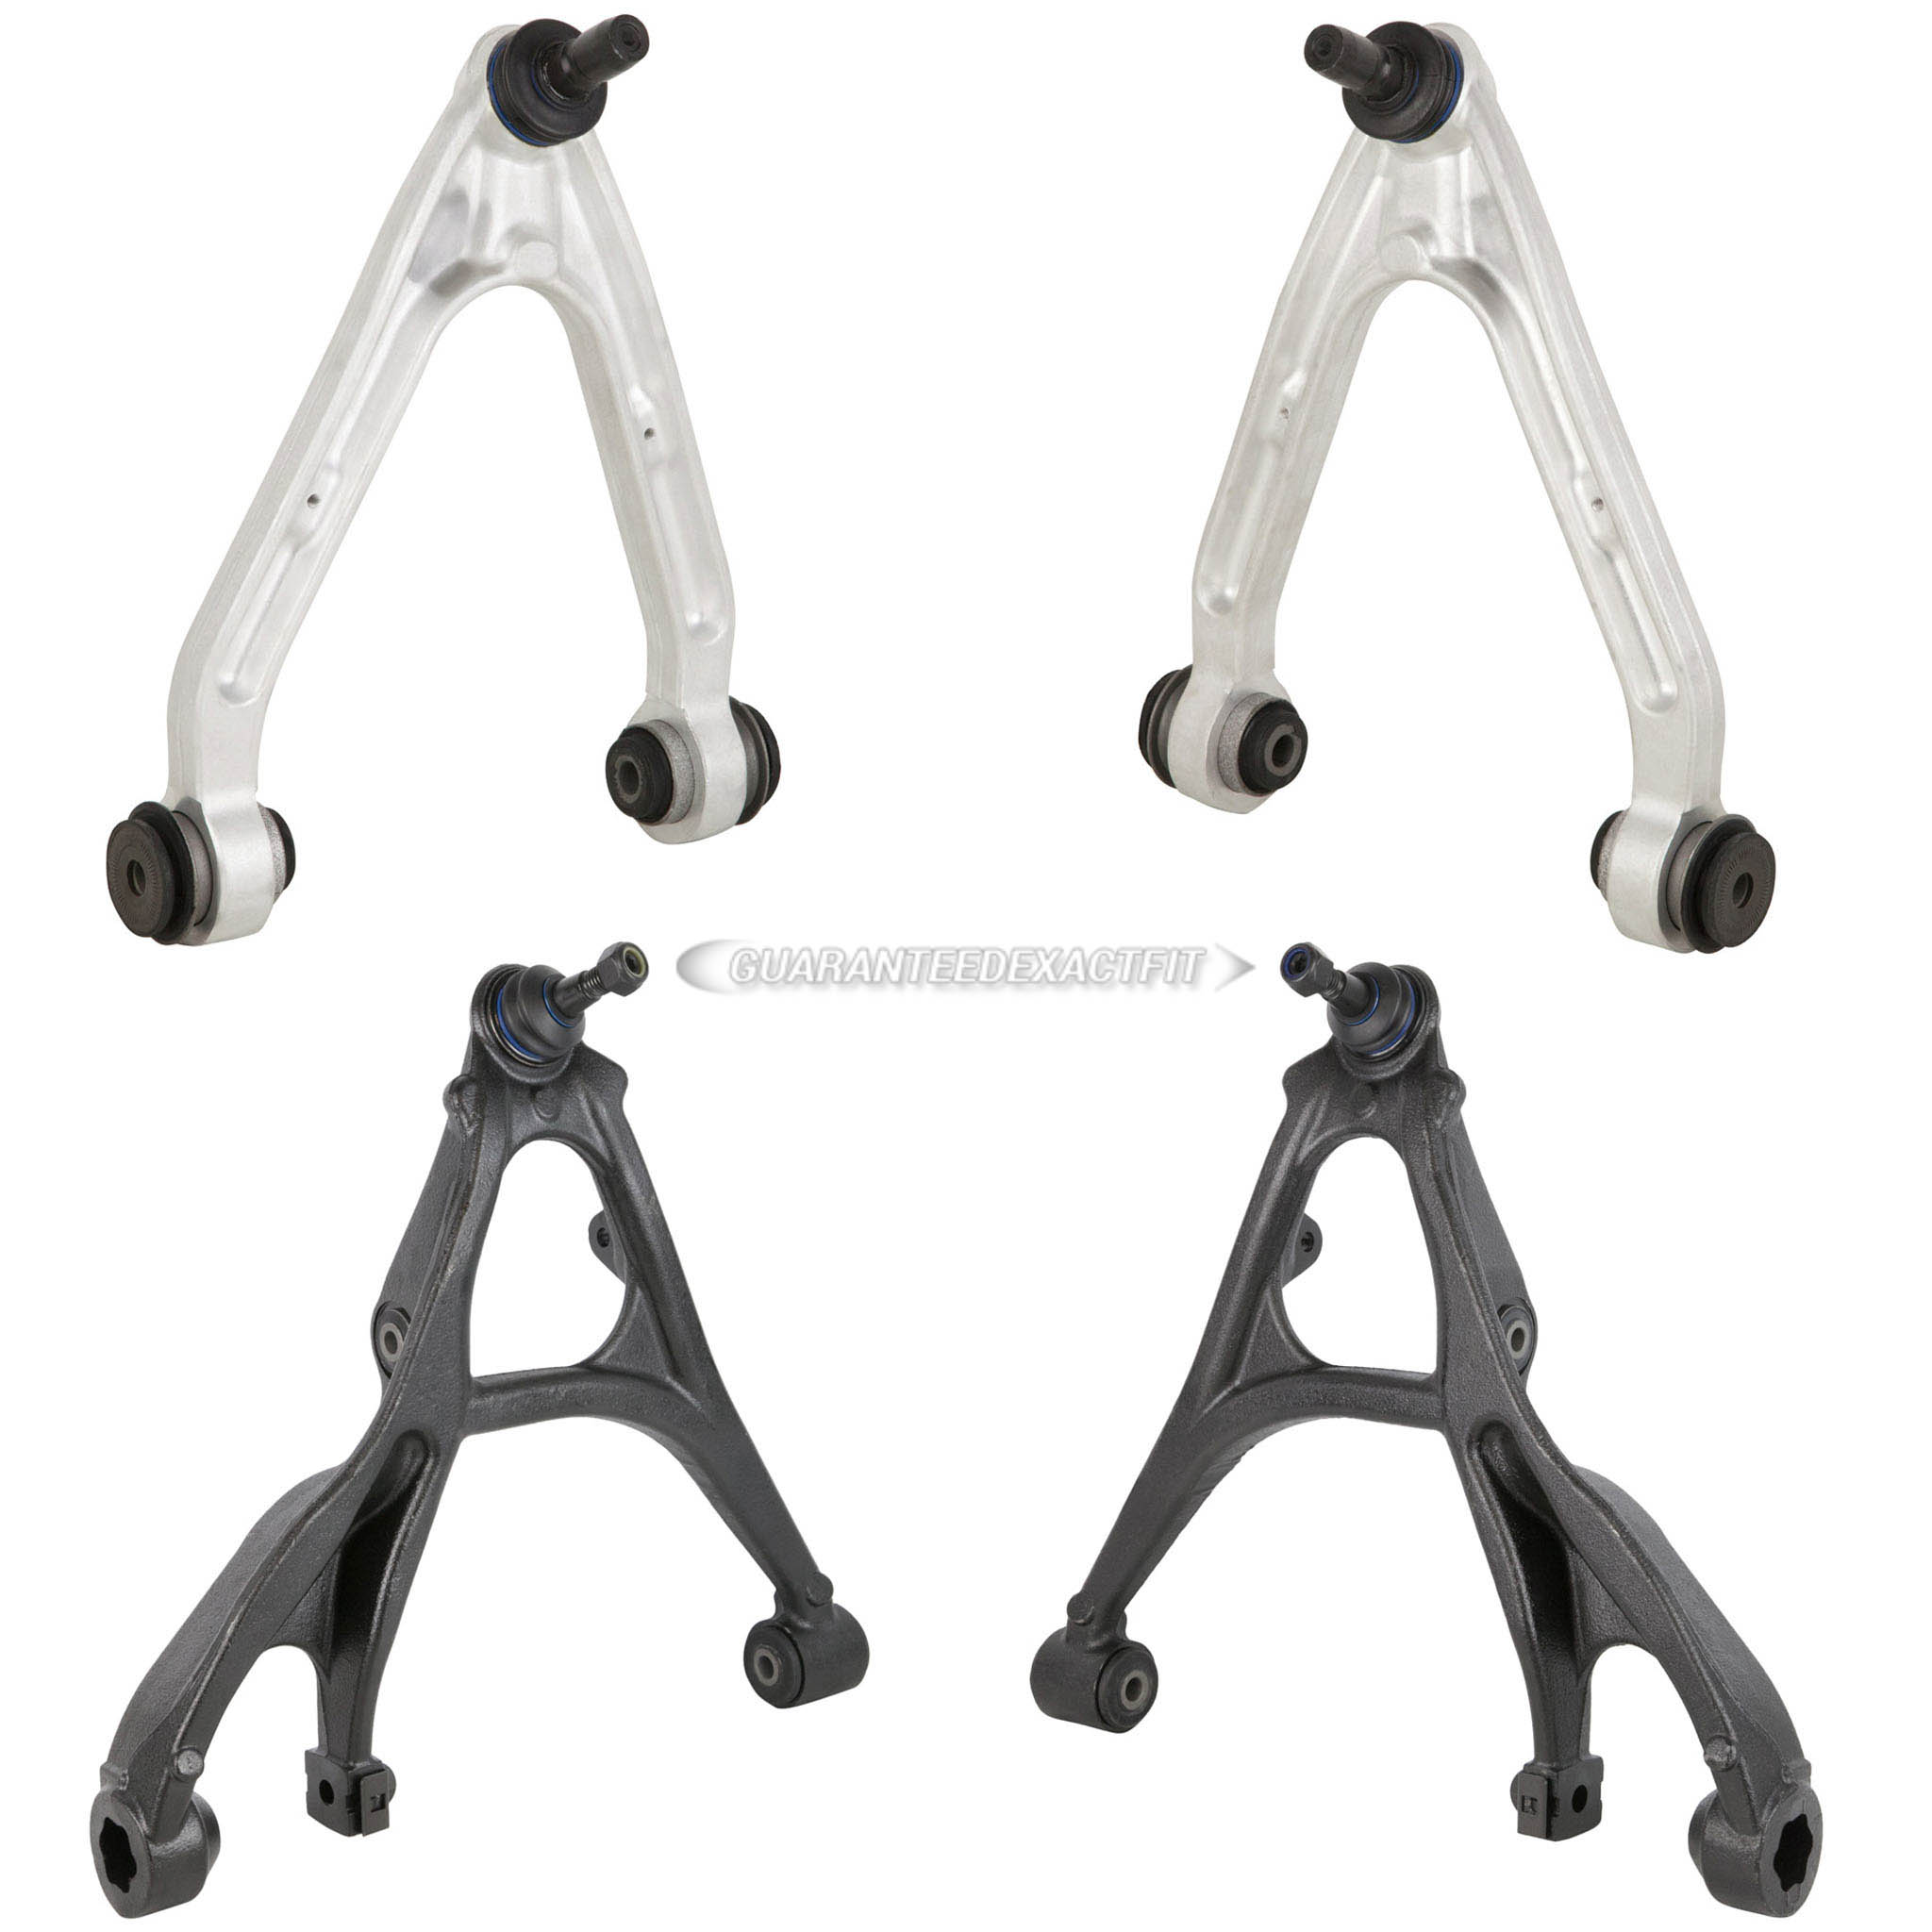 2006 Hummer H3 Control Arm Kit